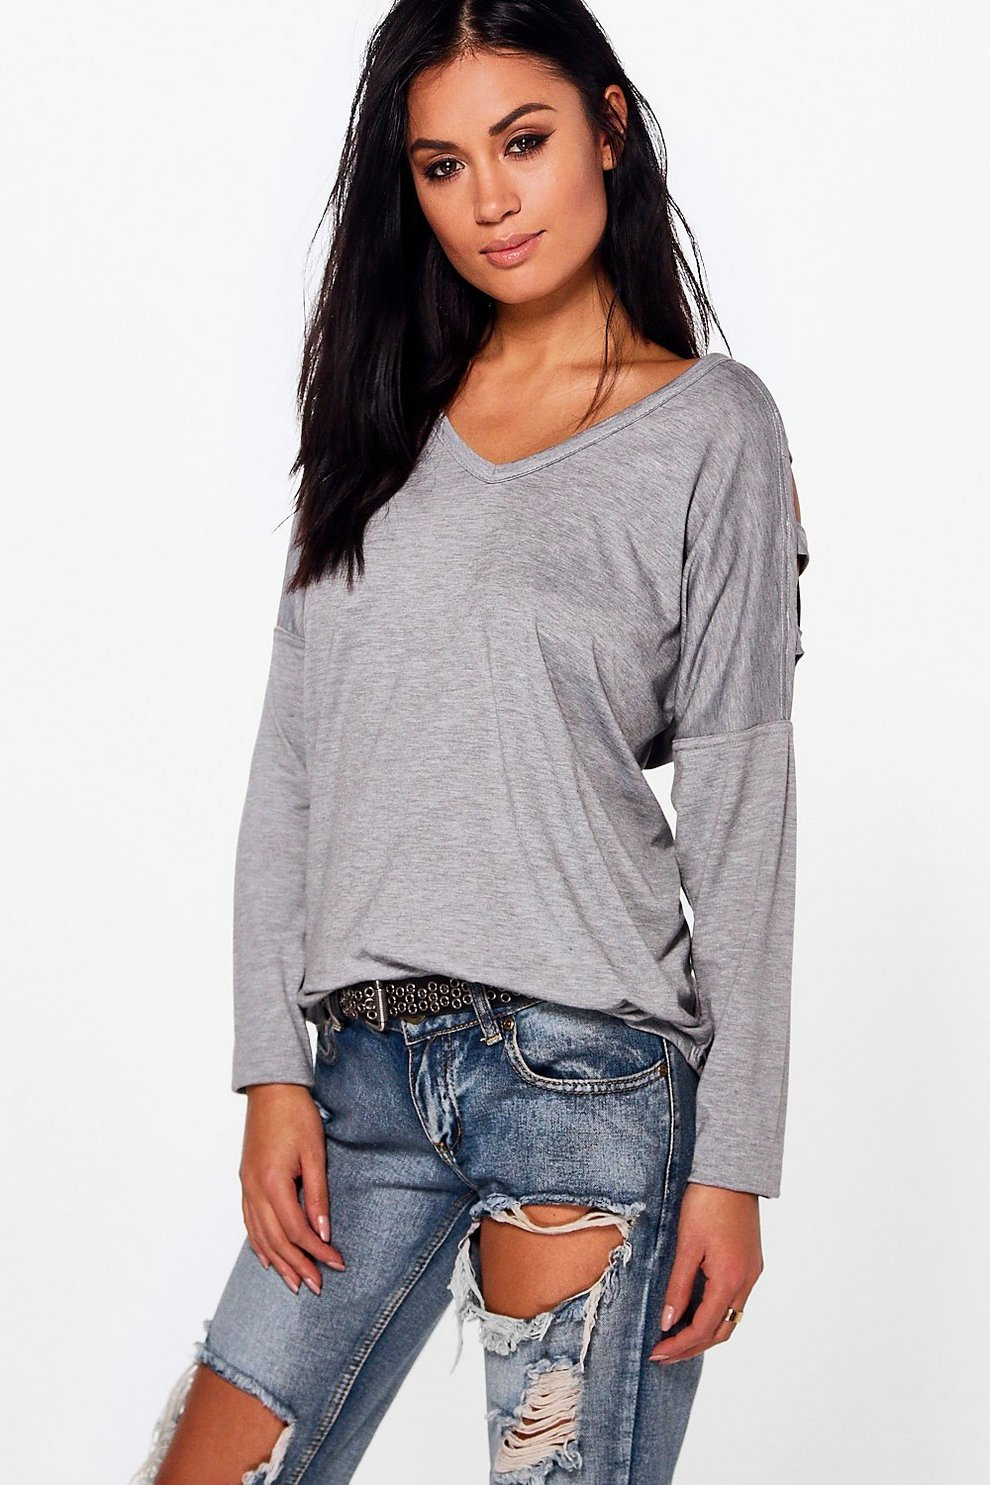 b7aac20c0fe Katy Cut Out Cold Shoulder Top. Womens Grey marl Katy Cut Out Cold Shoulder  Top. Hover to zoom